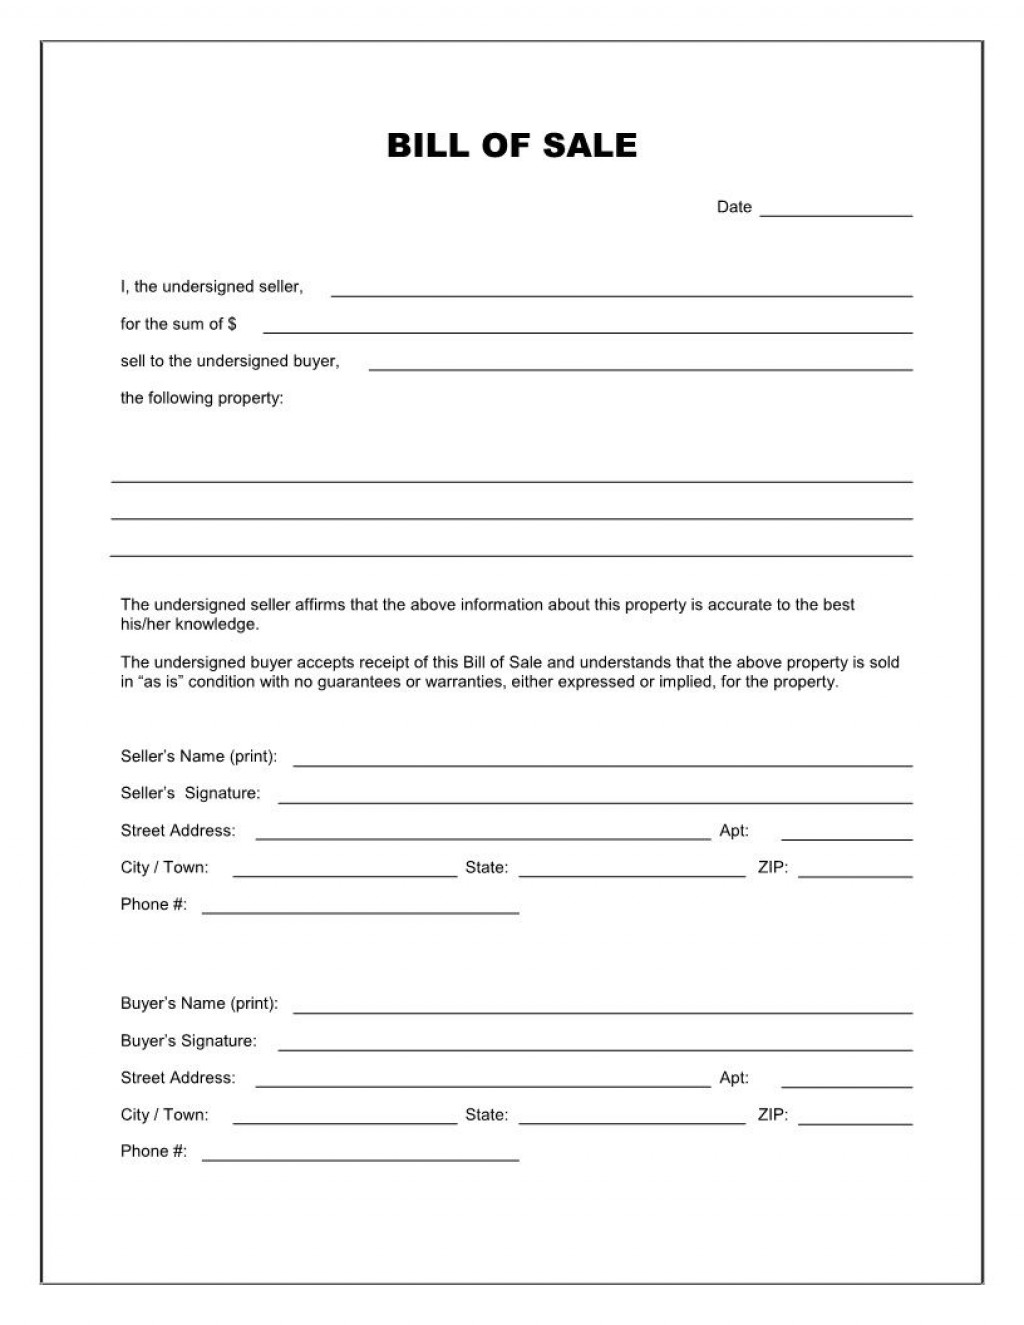 003 Impressive Template For Bill Of Sale Picture  Example Trailer Free Mobile Home Used CarLarge